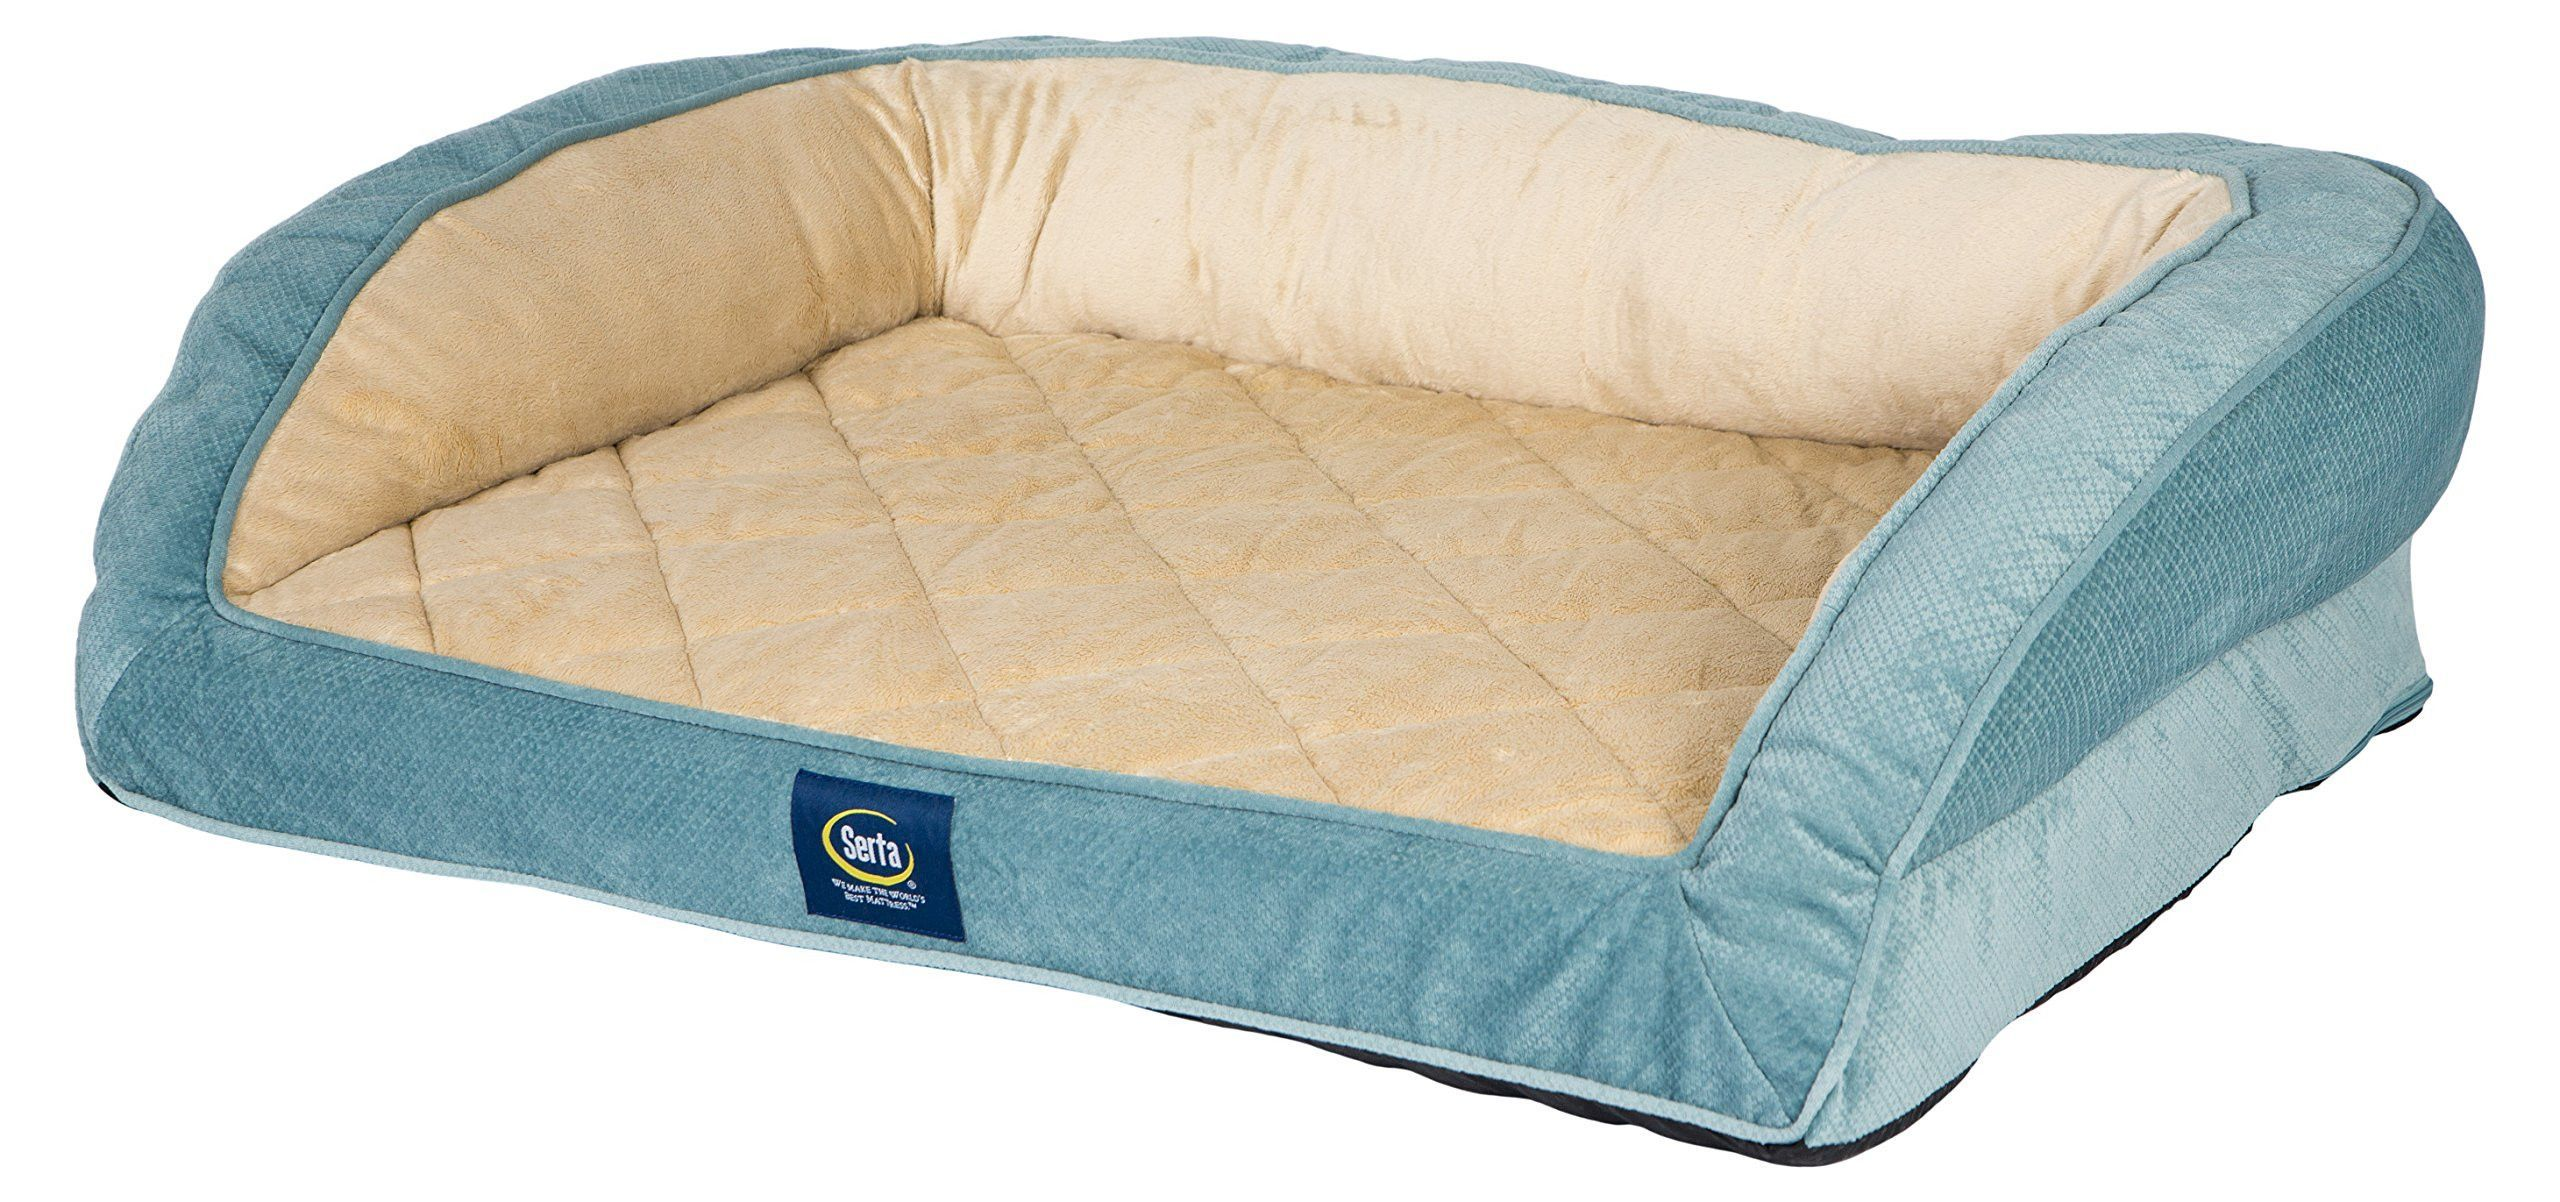 Serta Orthopedic Quilted Couch Blue Large Couch pet bed